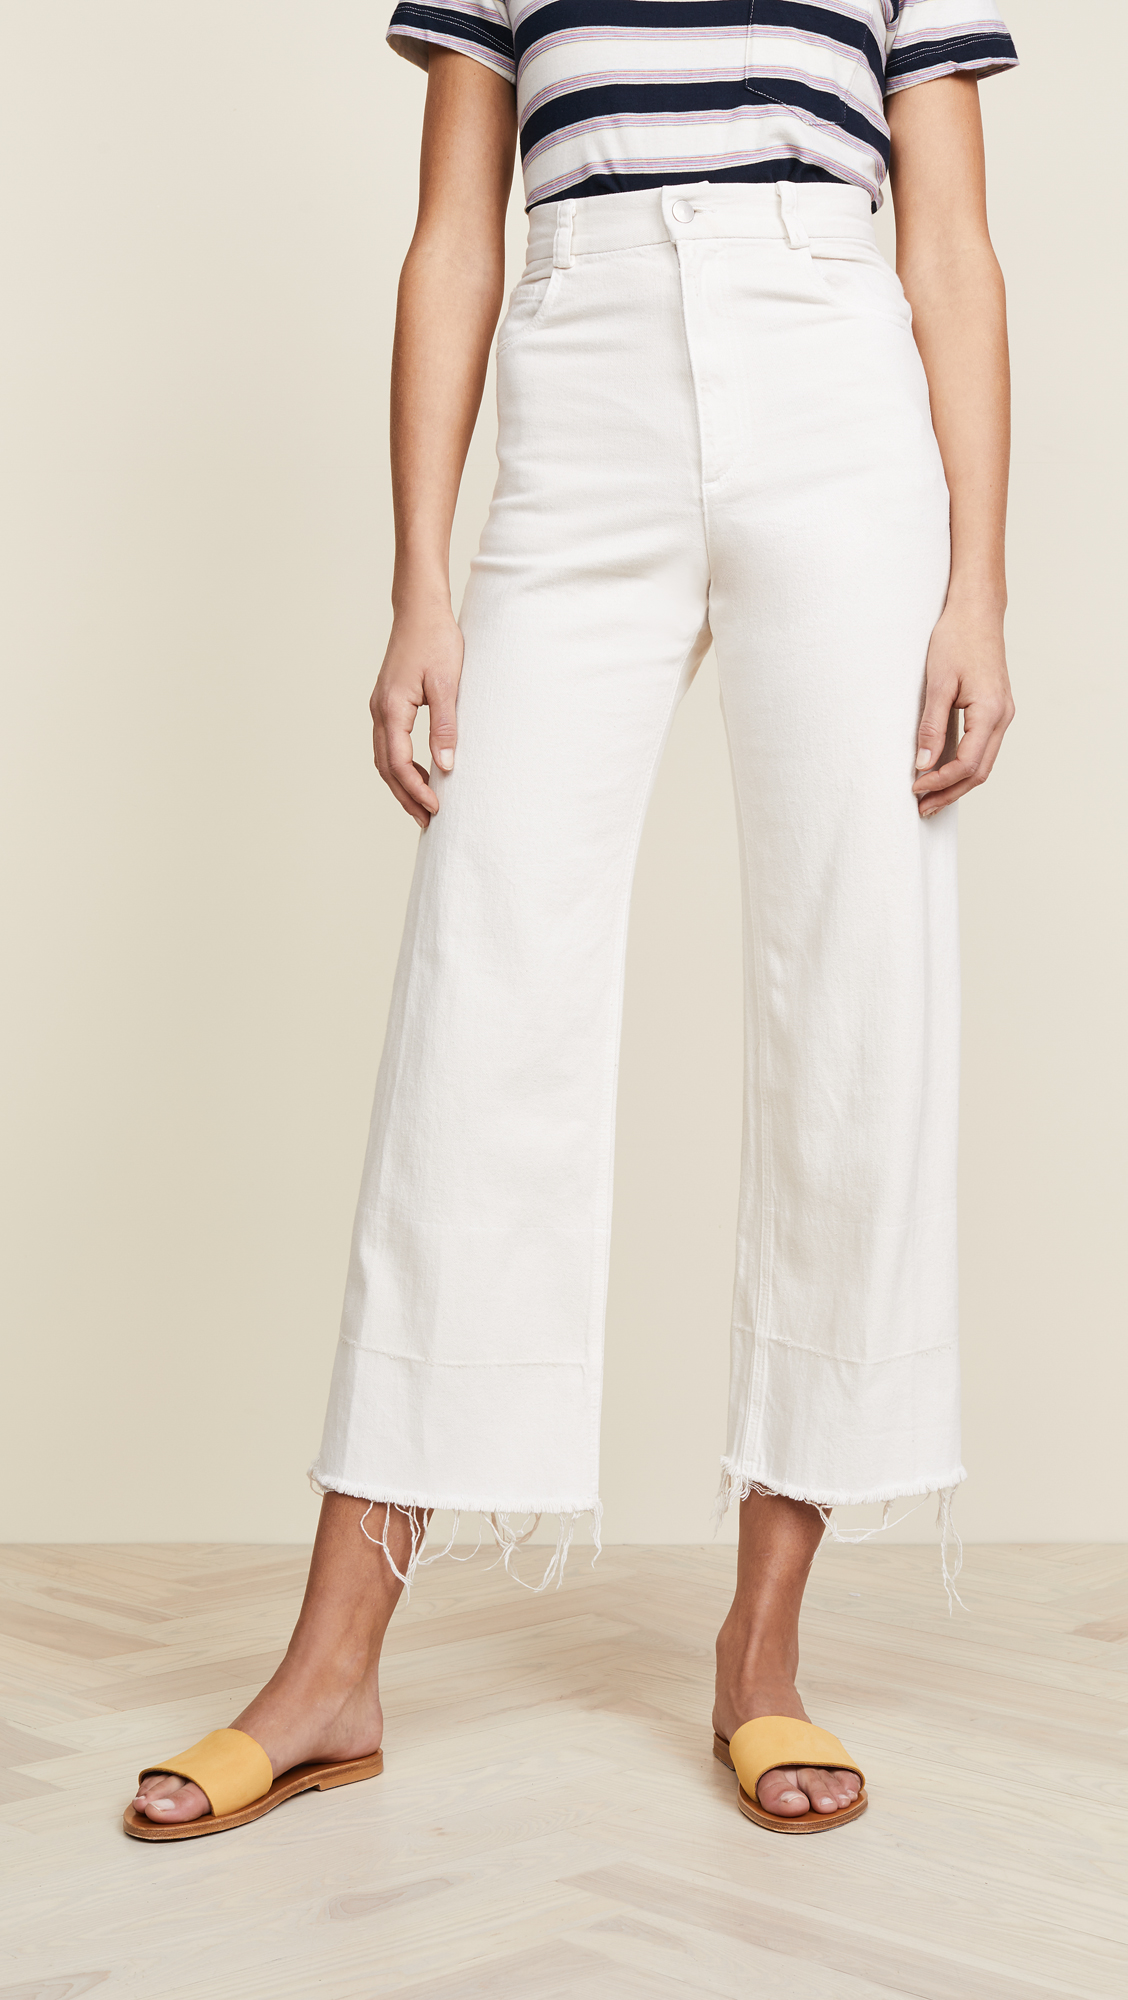 White Cut-off Jeans - One of my favorite summer staples is a pair of white jeans. I love the updated, relaxed look of these with the wide-leg flare and cut-off hem.